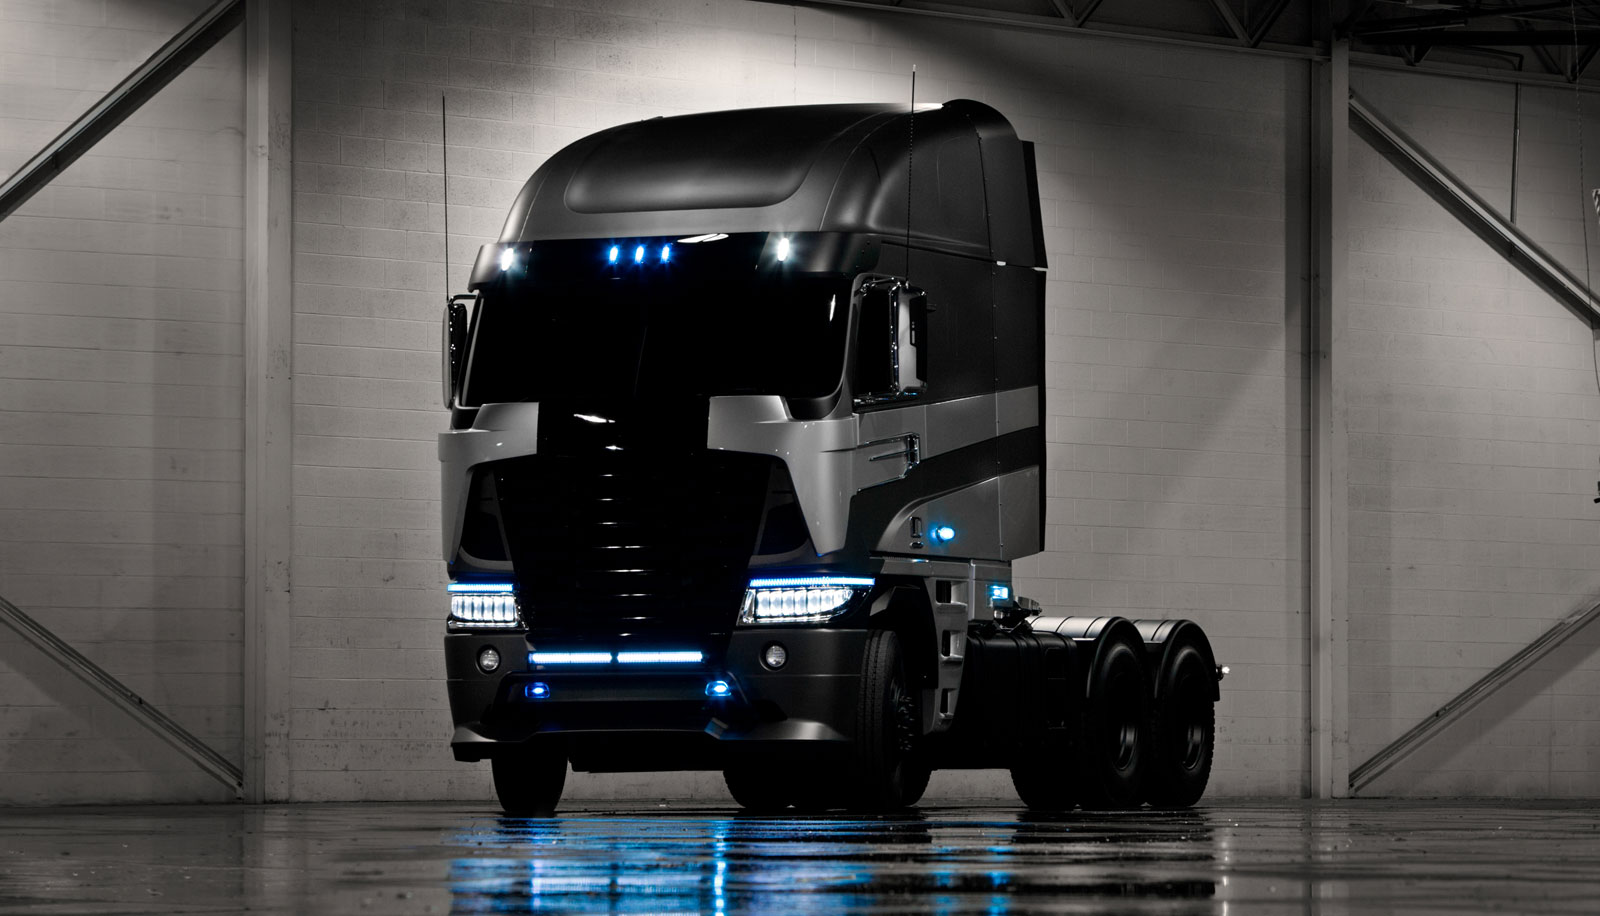 New Transformers 4 Truck Revealed By Michael Bay